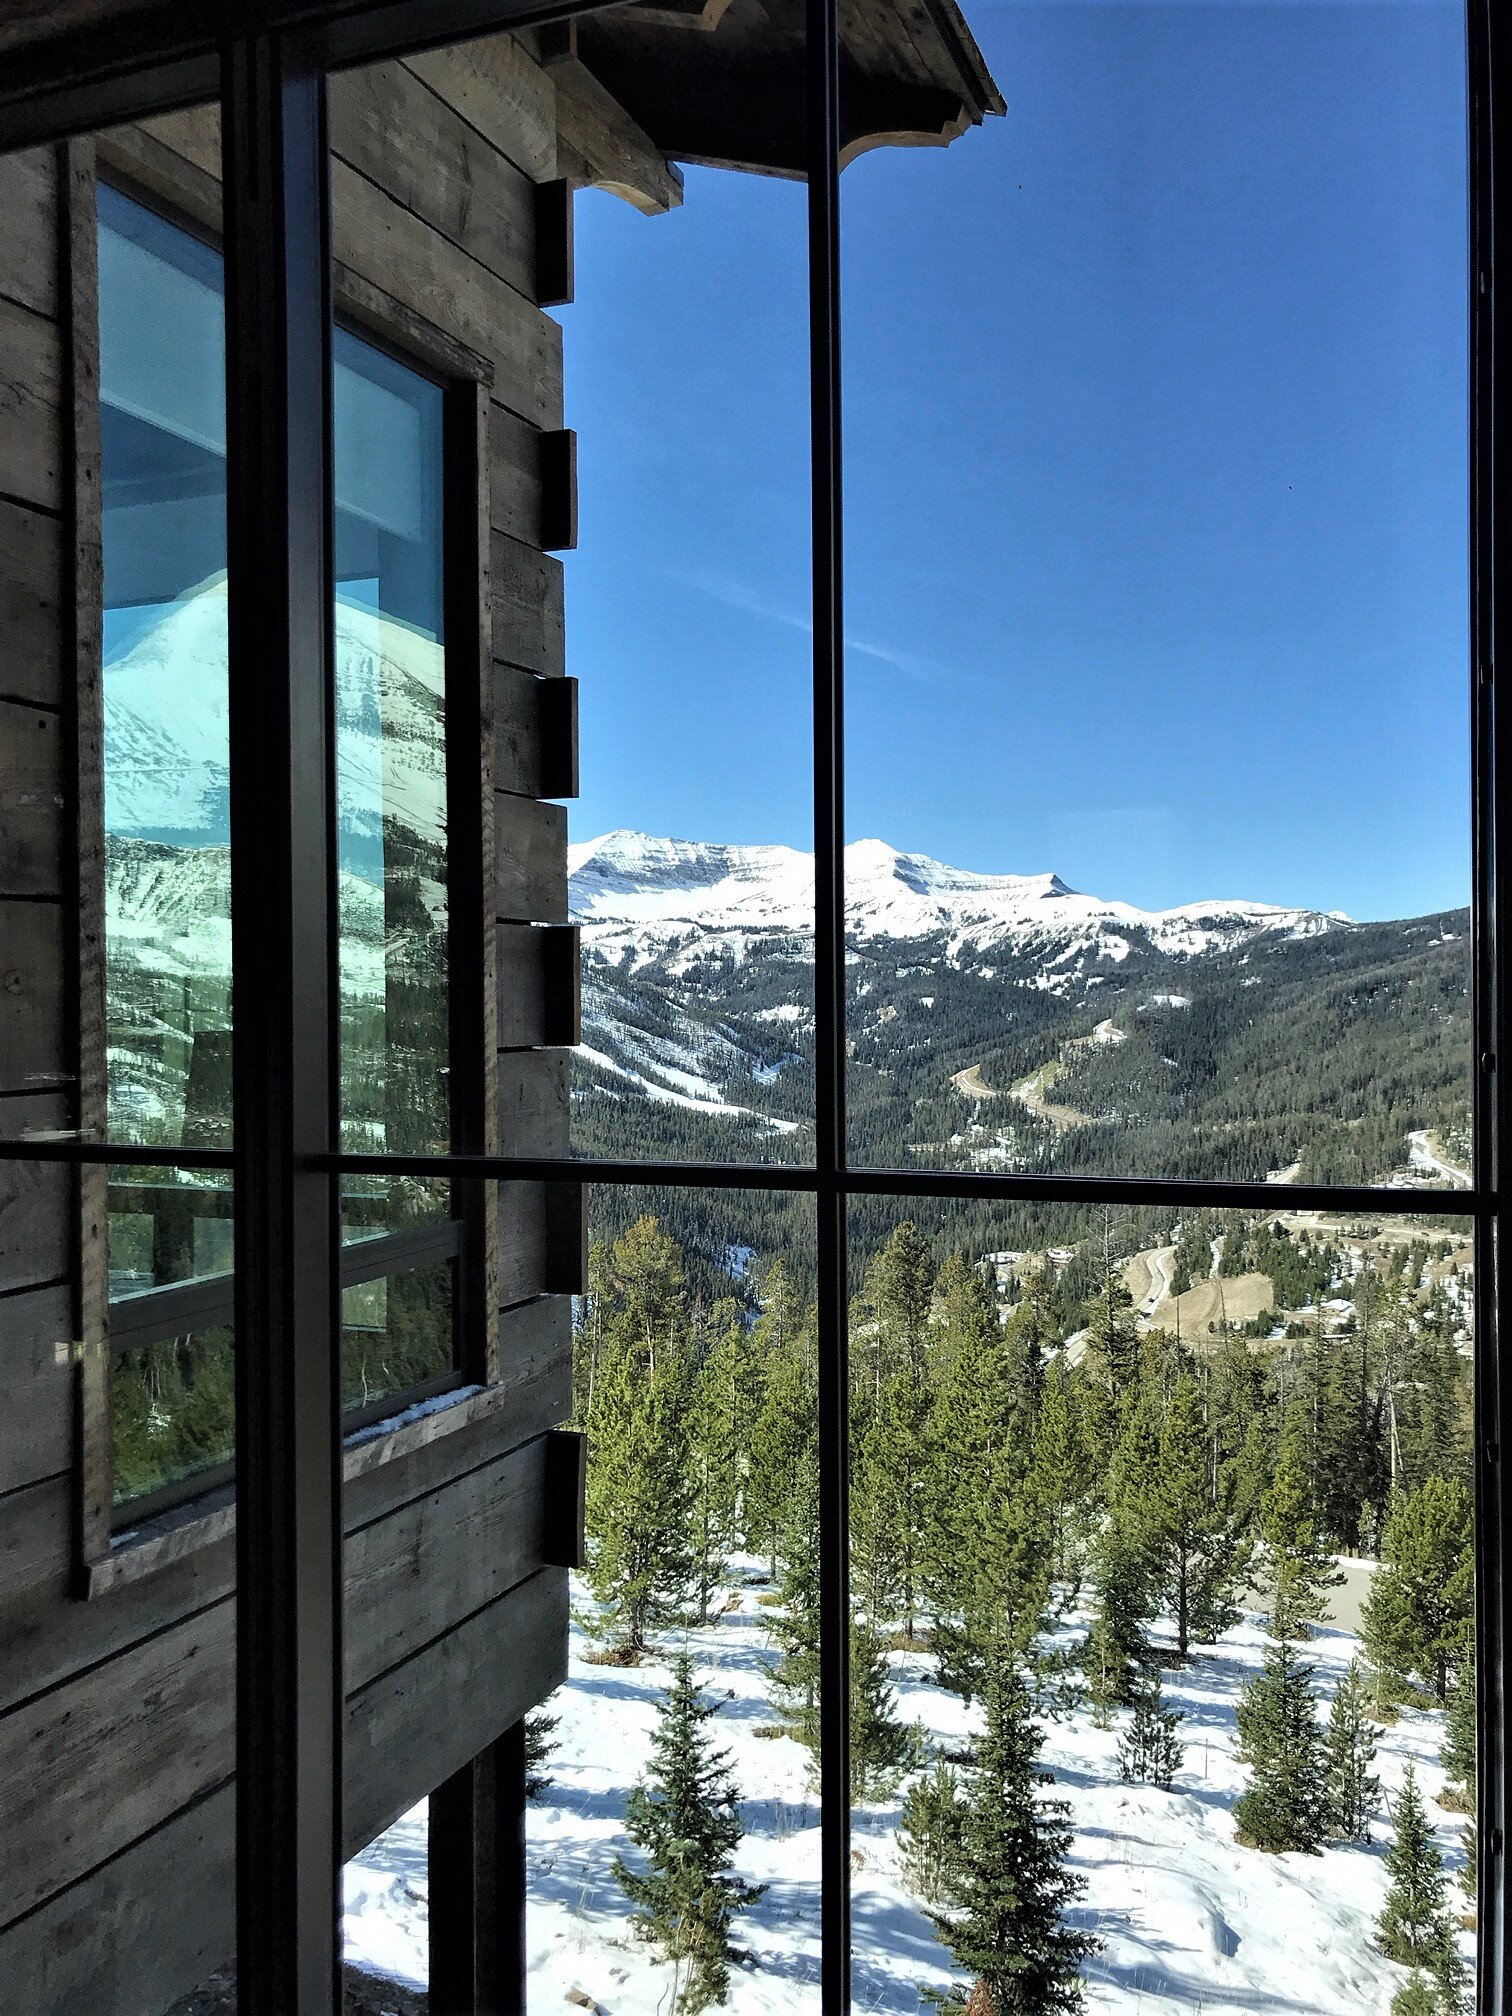 Big Sky Yellowstone Club Custom Home Mausfalle exterior window and view Oct 2019.jpg